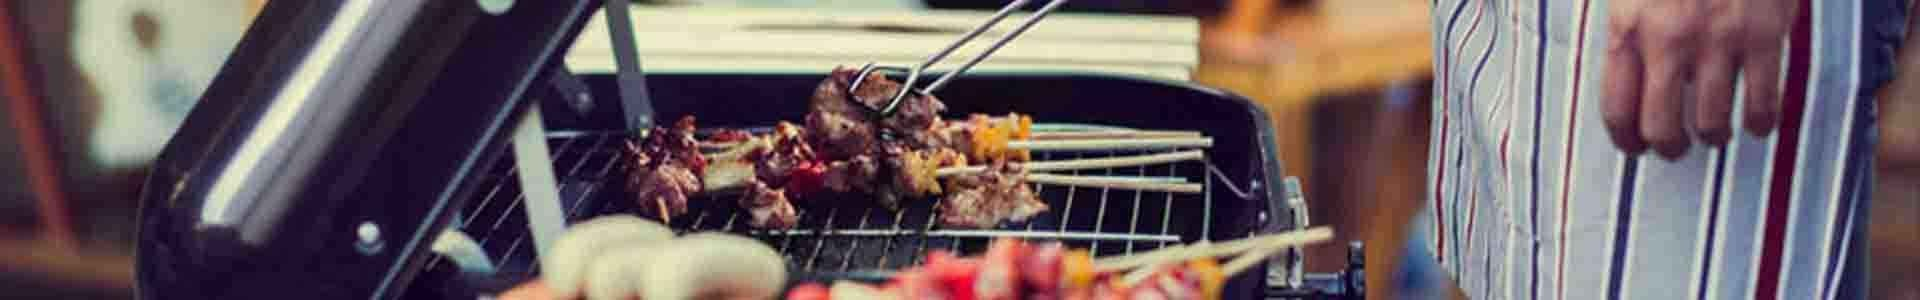 servimenaje sale appliances plates and cooking grills